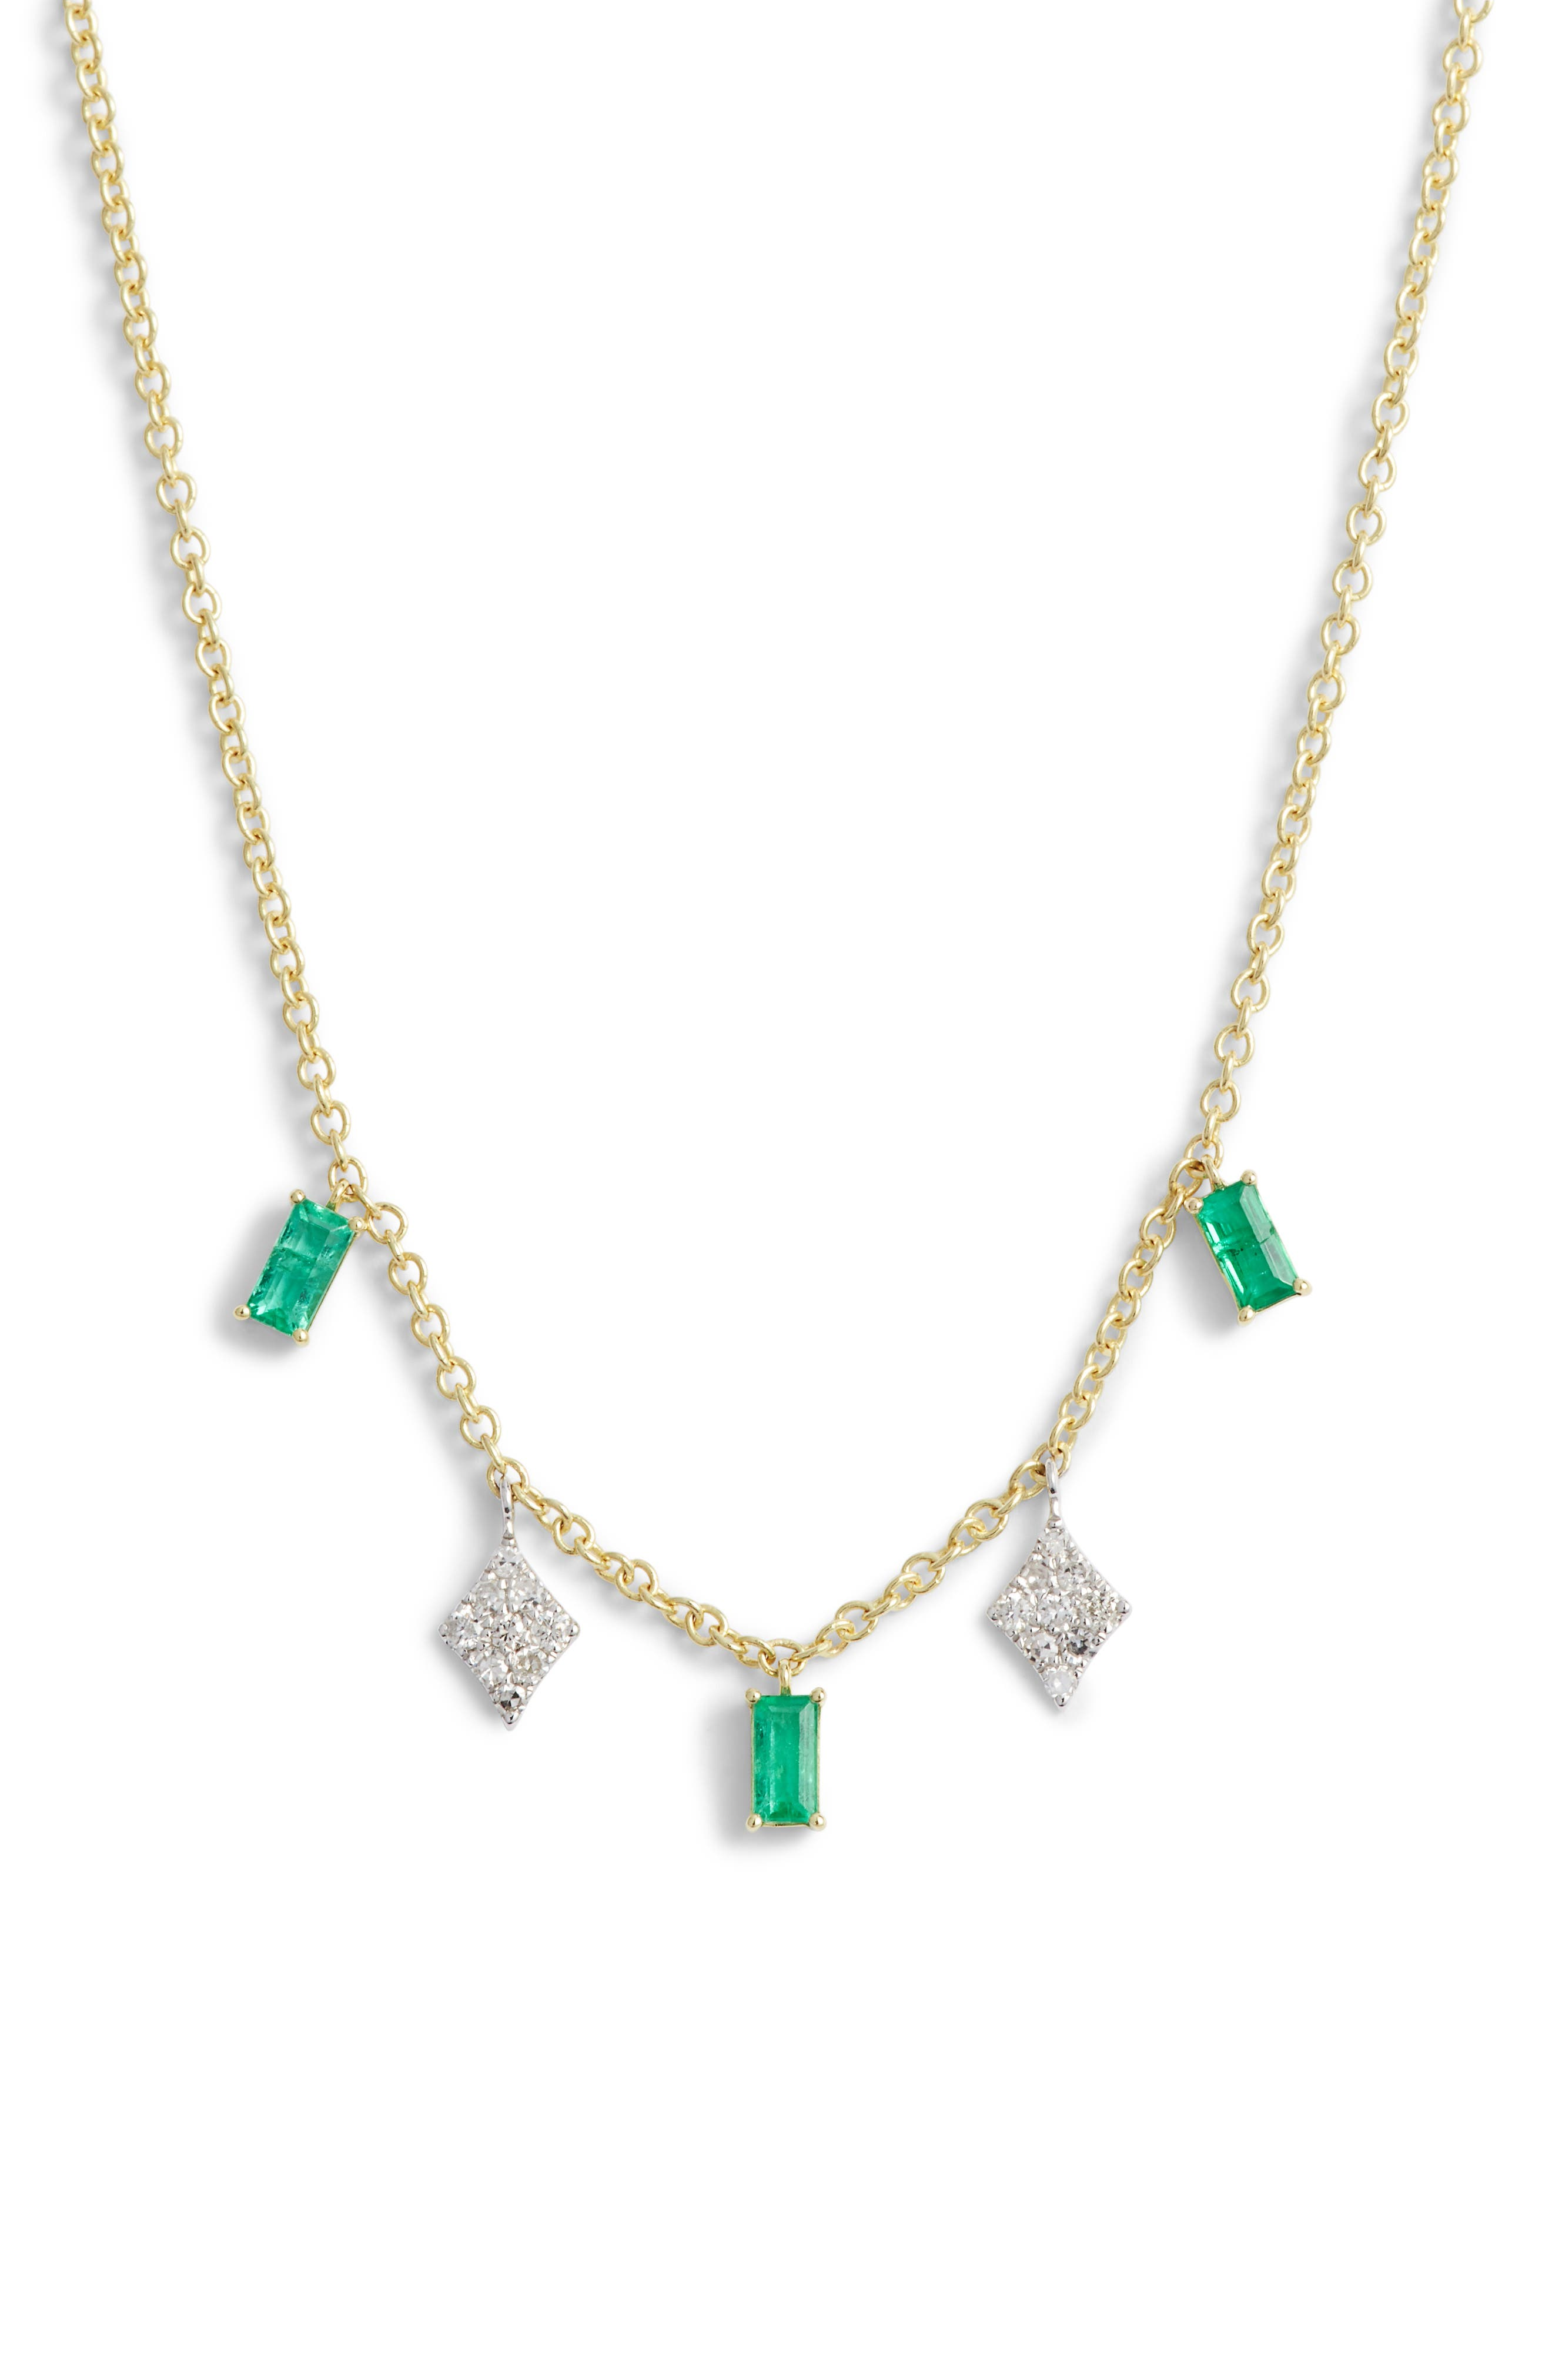 MEIRA T Emerald & Diamond Charm Necklace in Gold